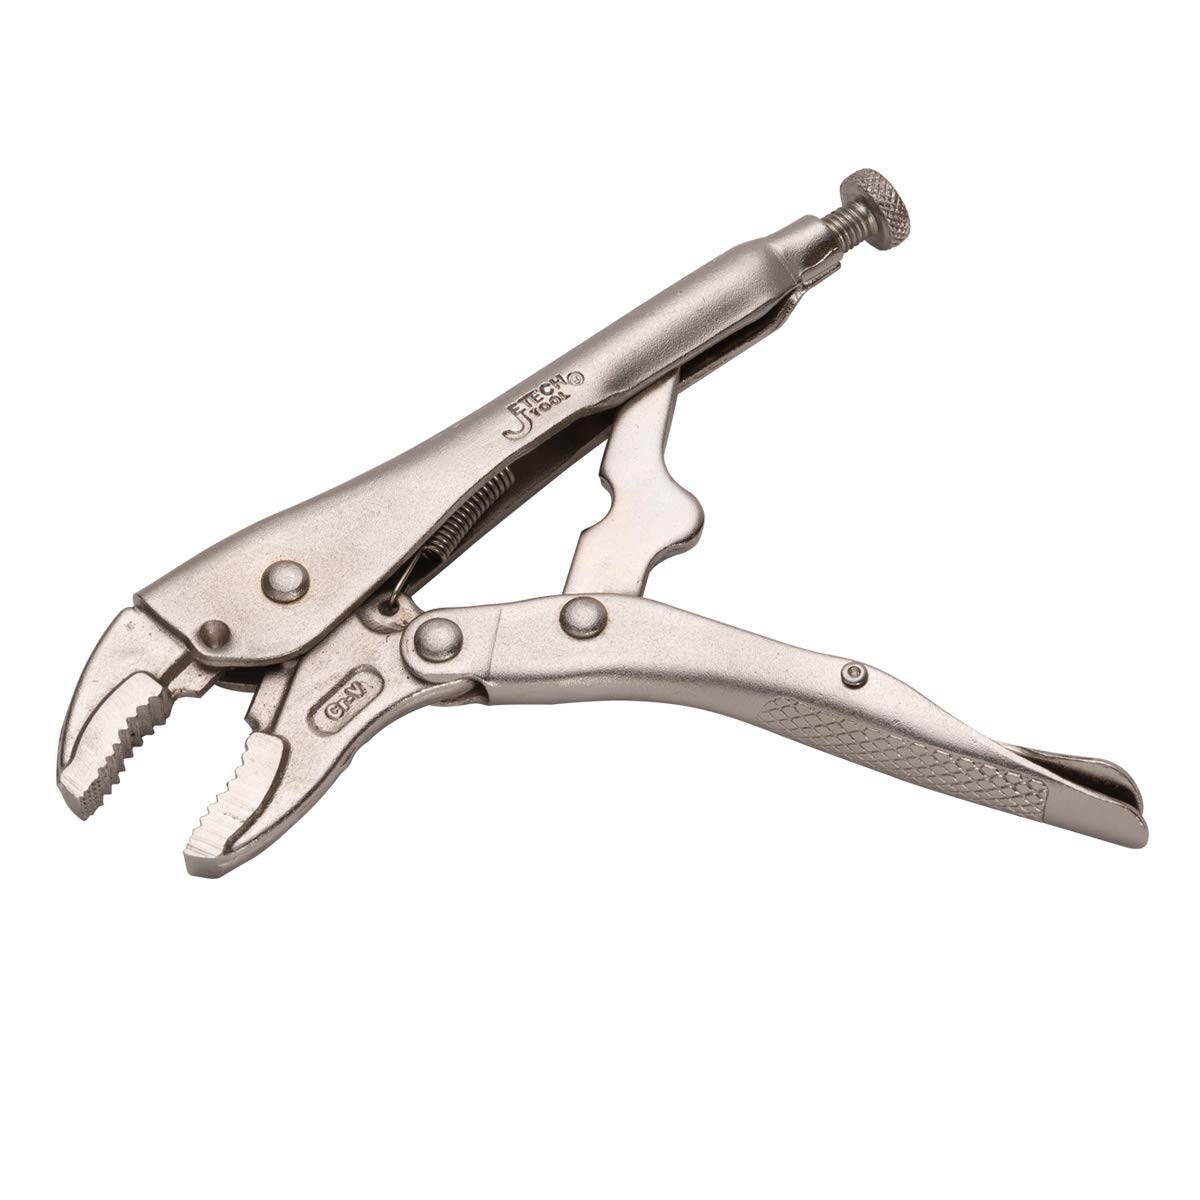 10 PCS Set Jetech 7 180mm Locking Plier with Curved jaws